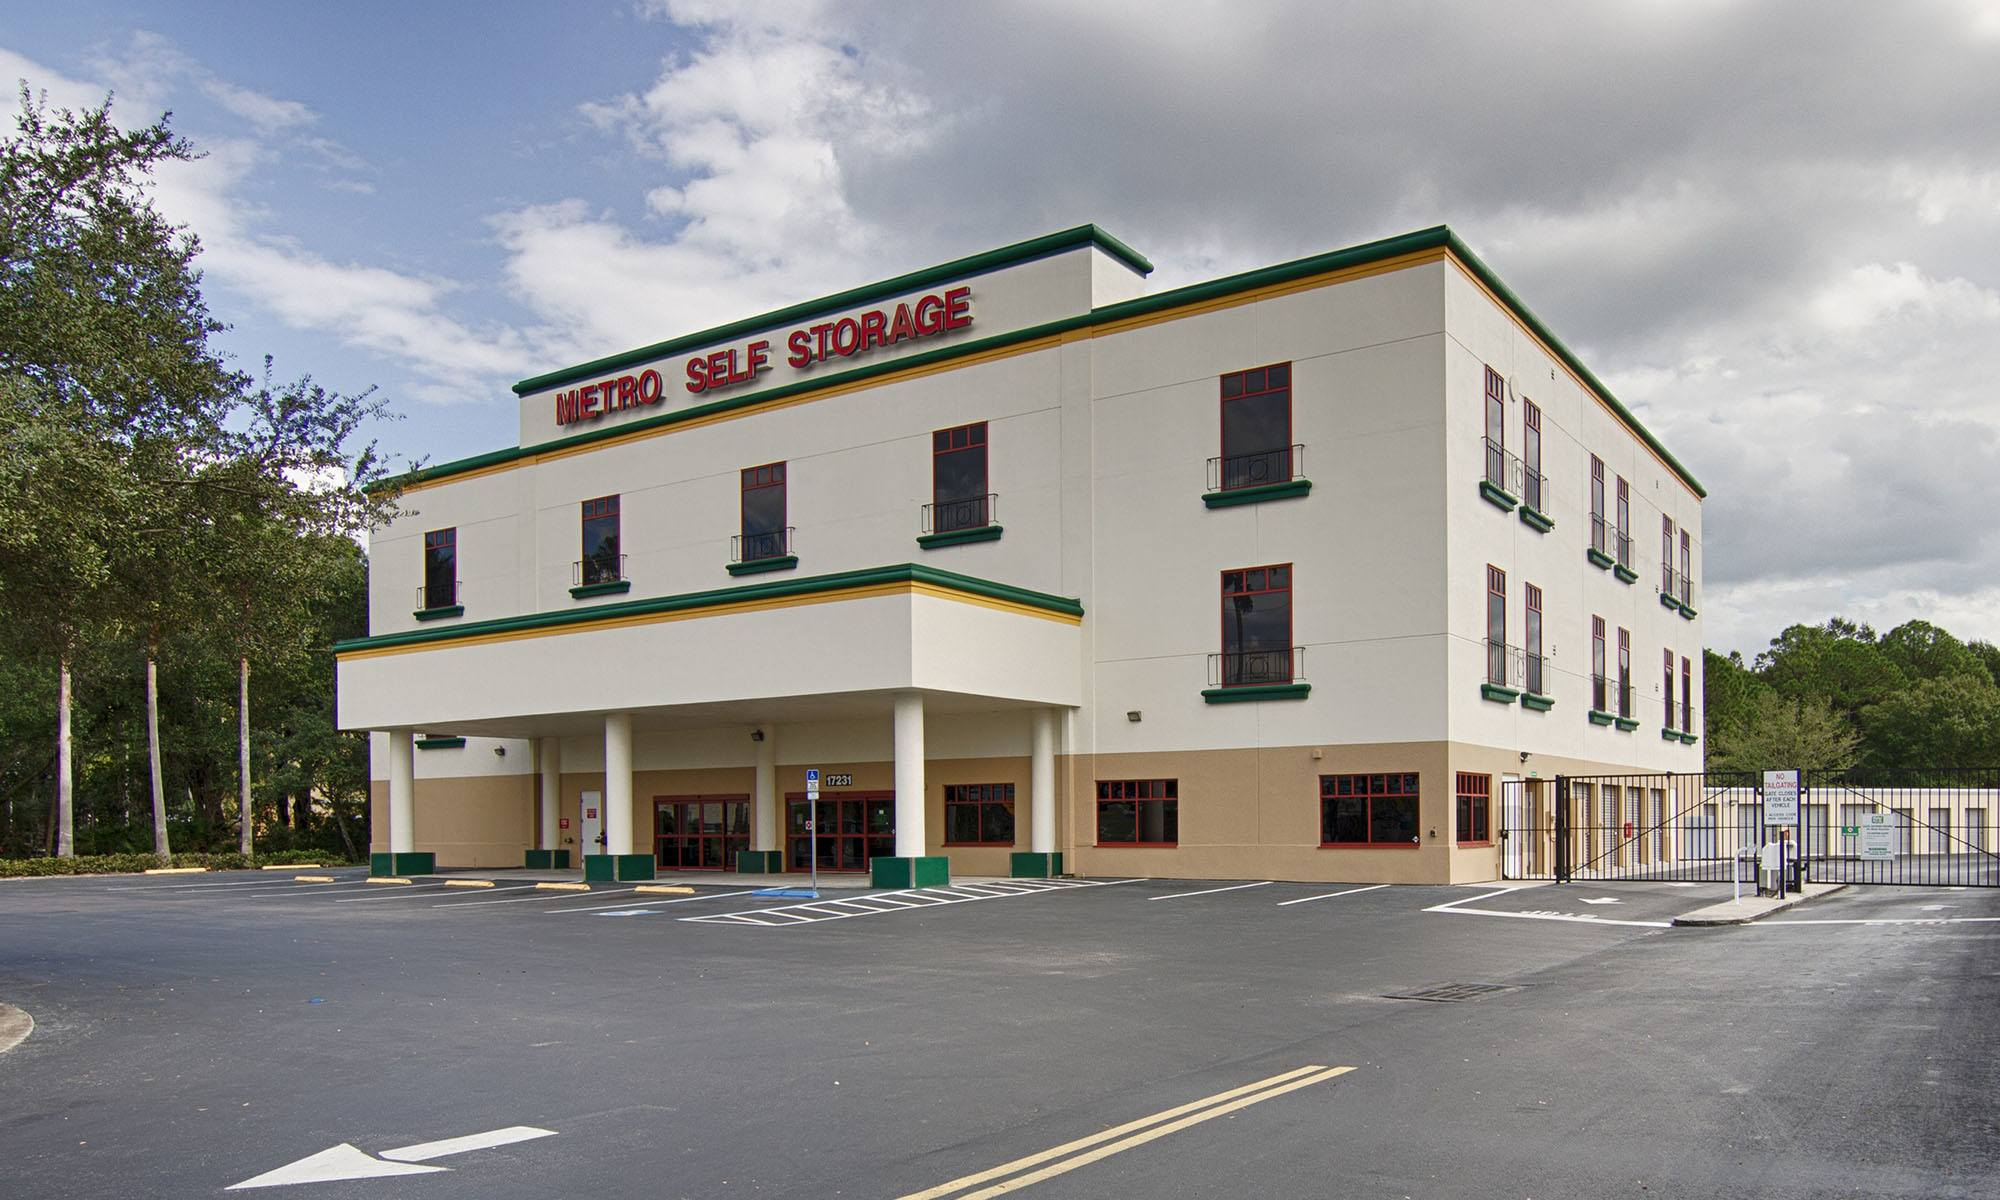 Self storage in Tampa FL